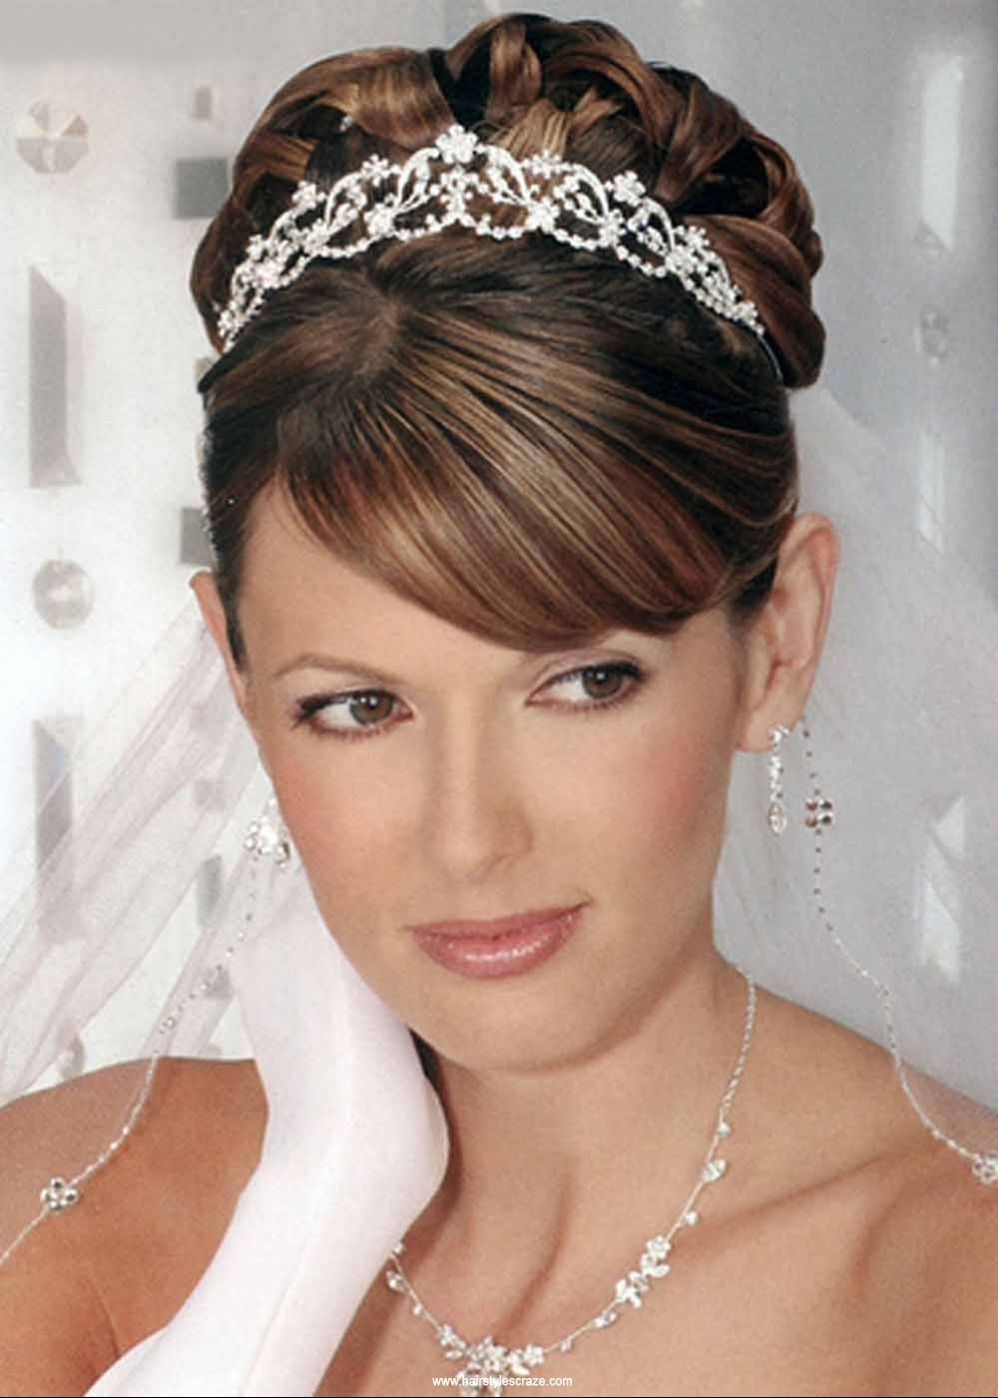 wow. i love her hairstyle. for more bridal and other cool